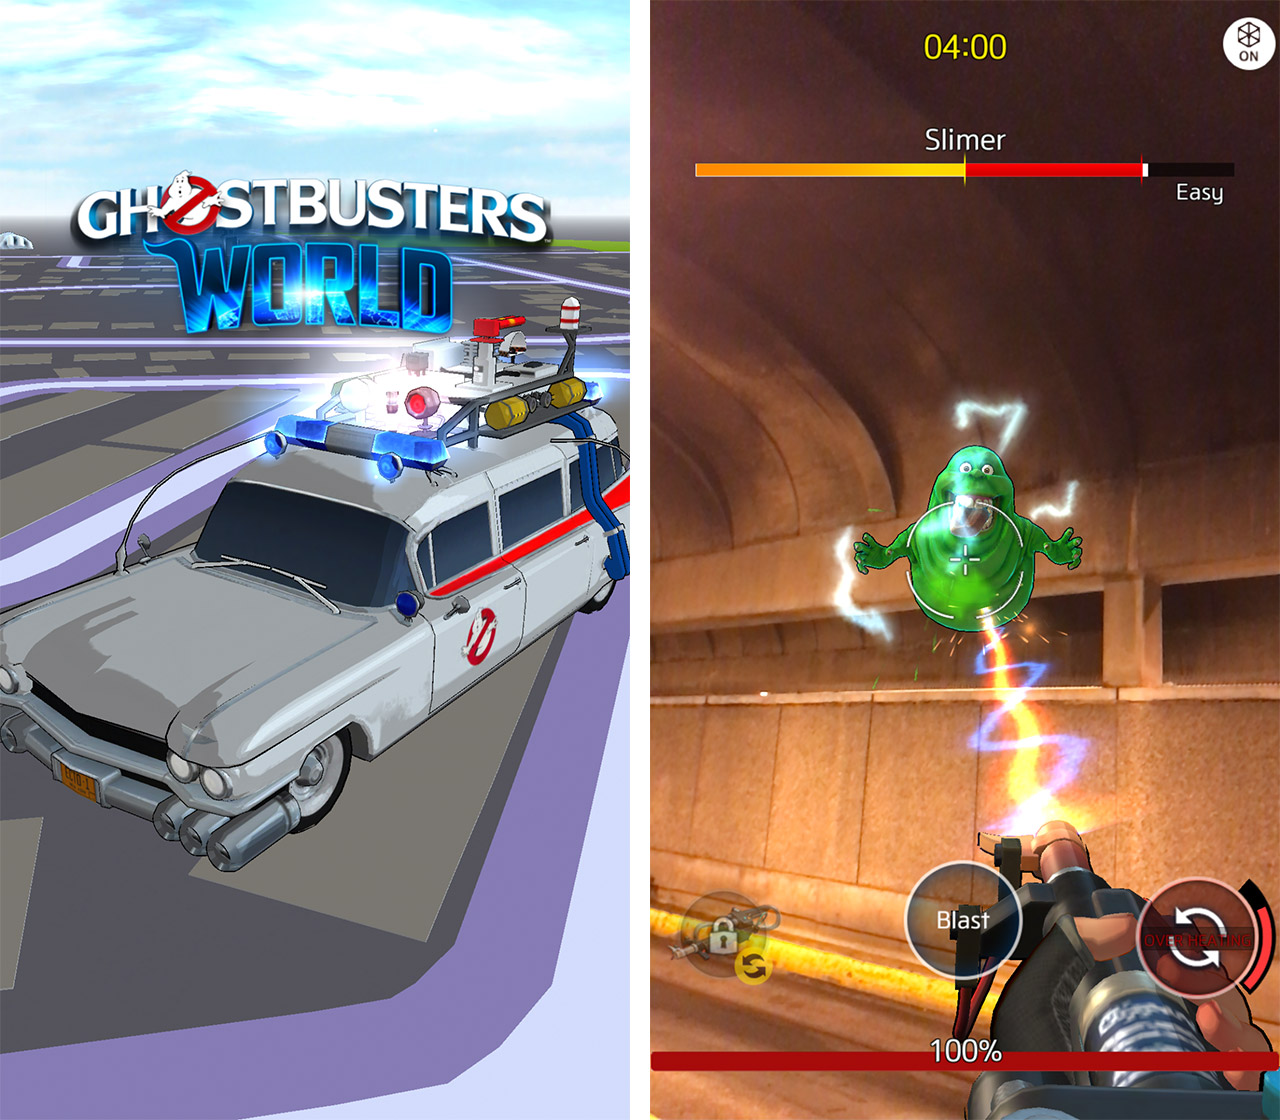 Ghostbusters World header